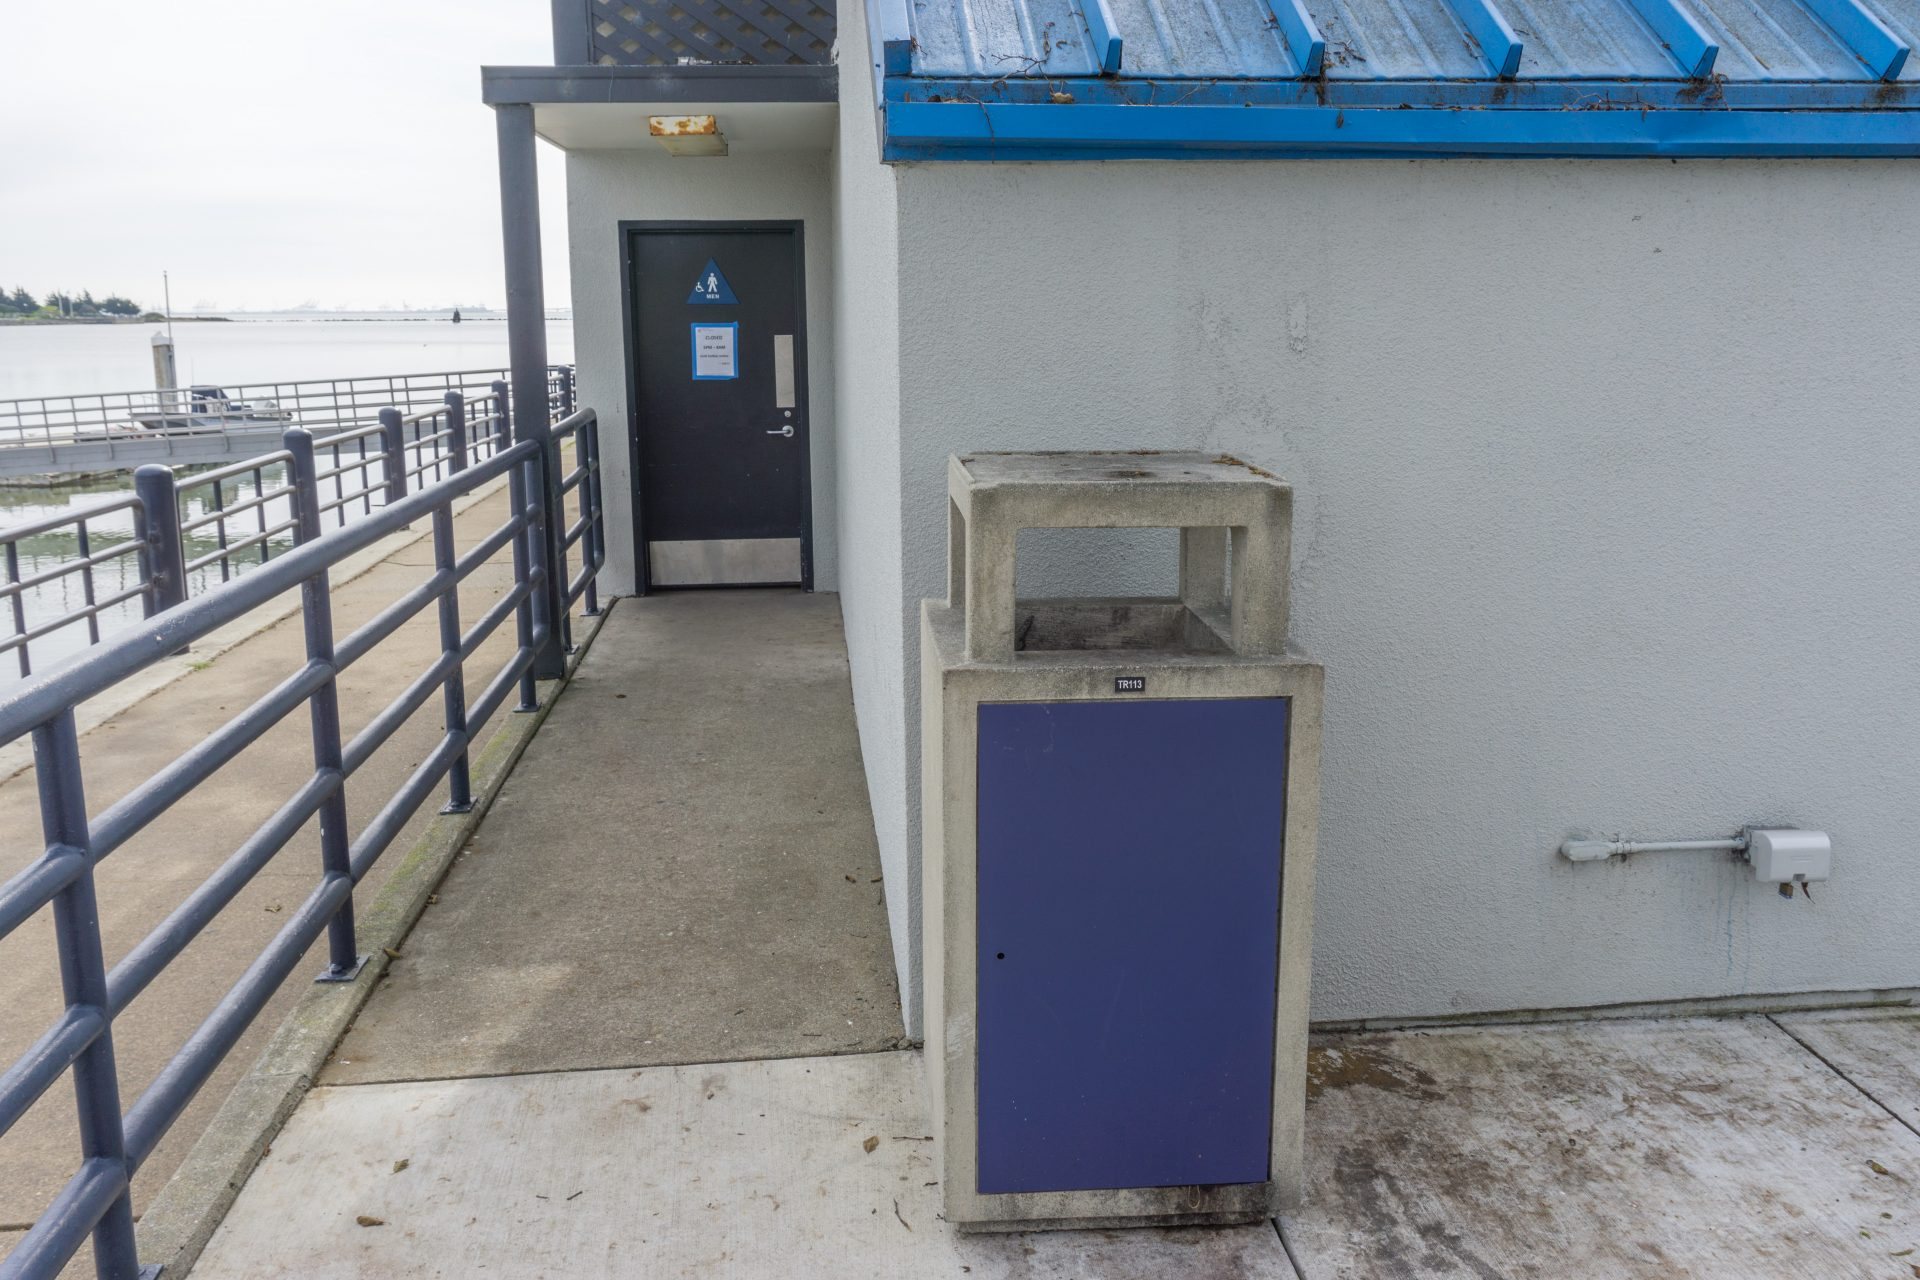 trashcan next to stucco building with bathroom